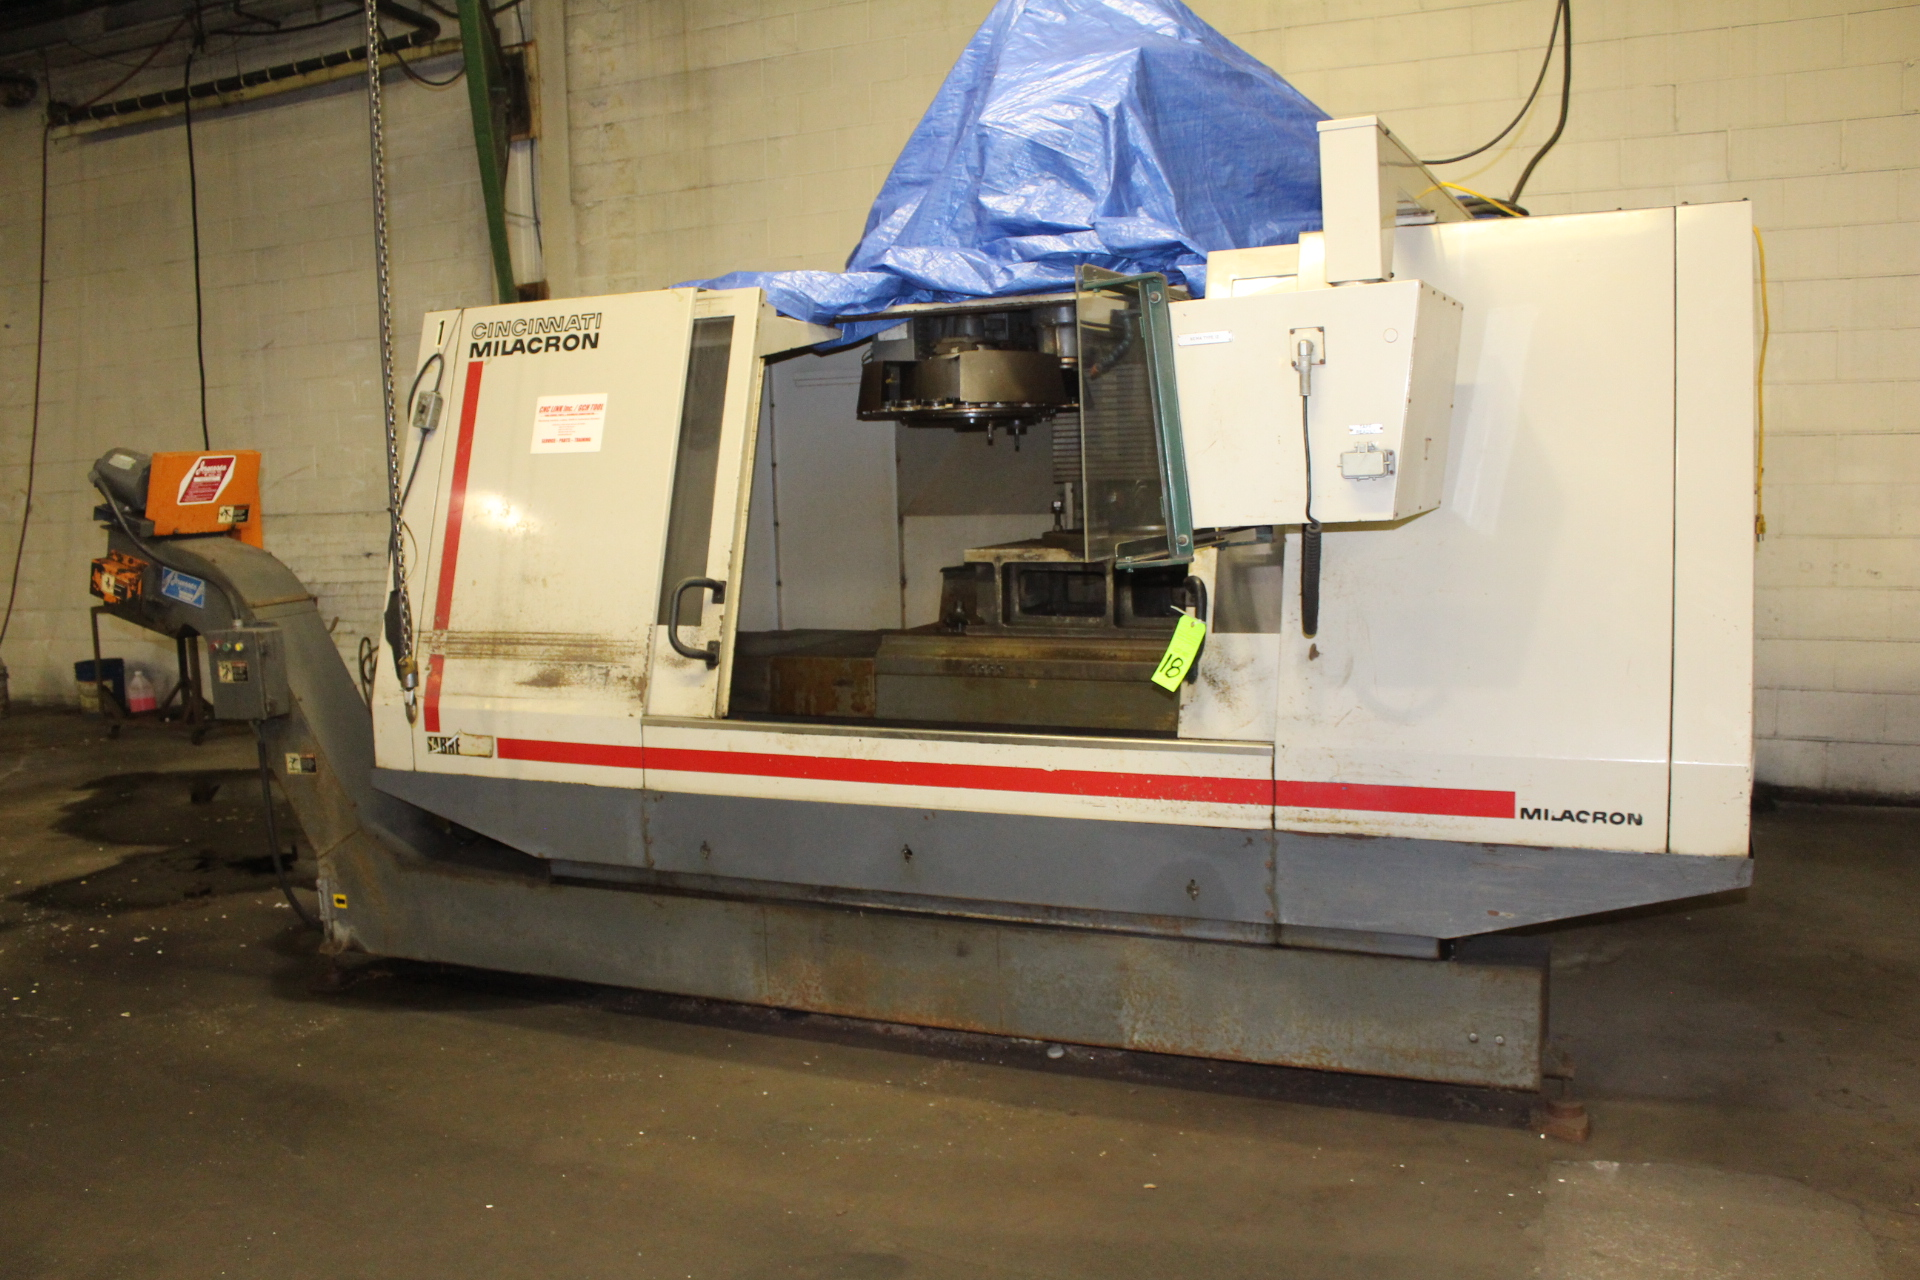 Lot 18 - Cincinnati Milacron Sabre 1250 CNC Vertical Machining Center